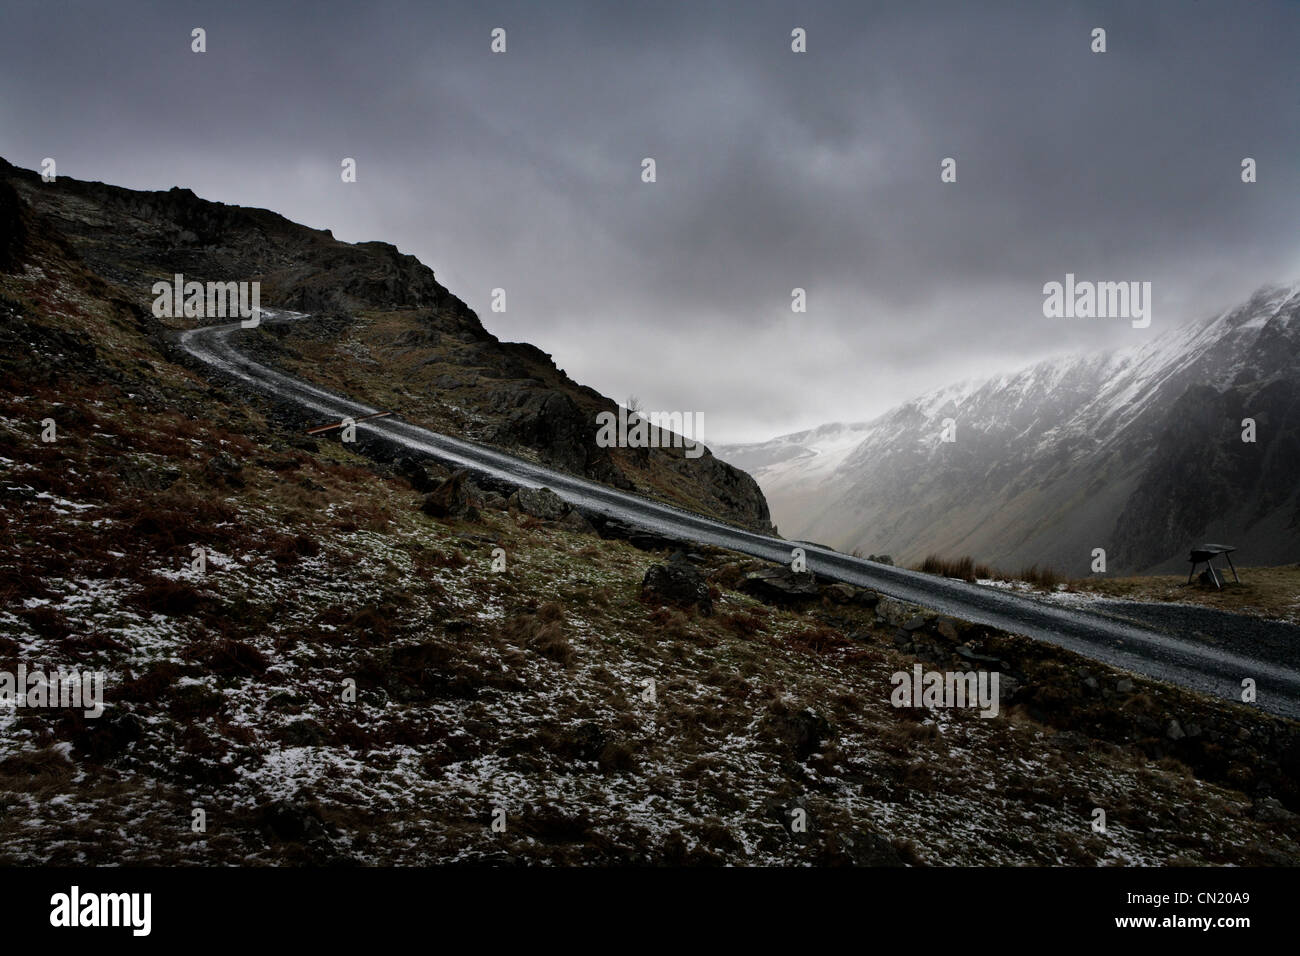 Snow and mountain road, Lake District, Cumbria, England, UK - Stock Image